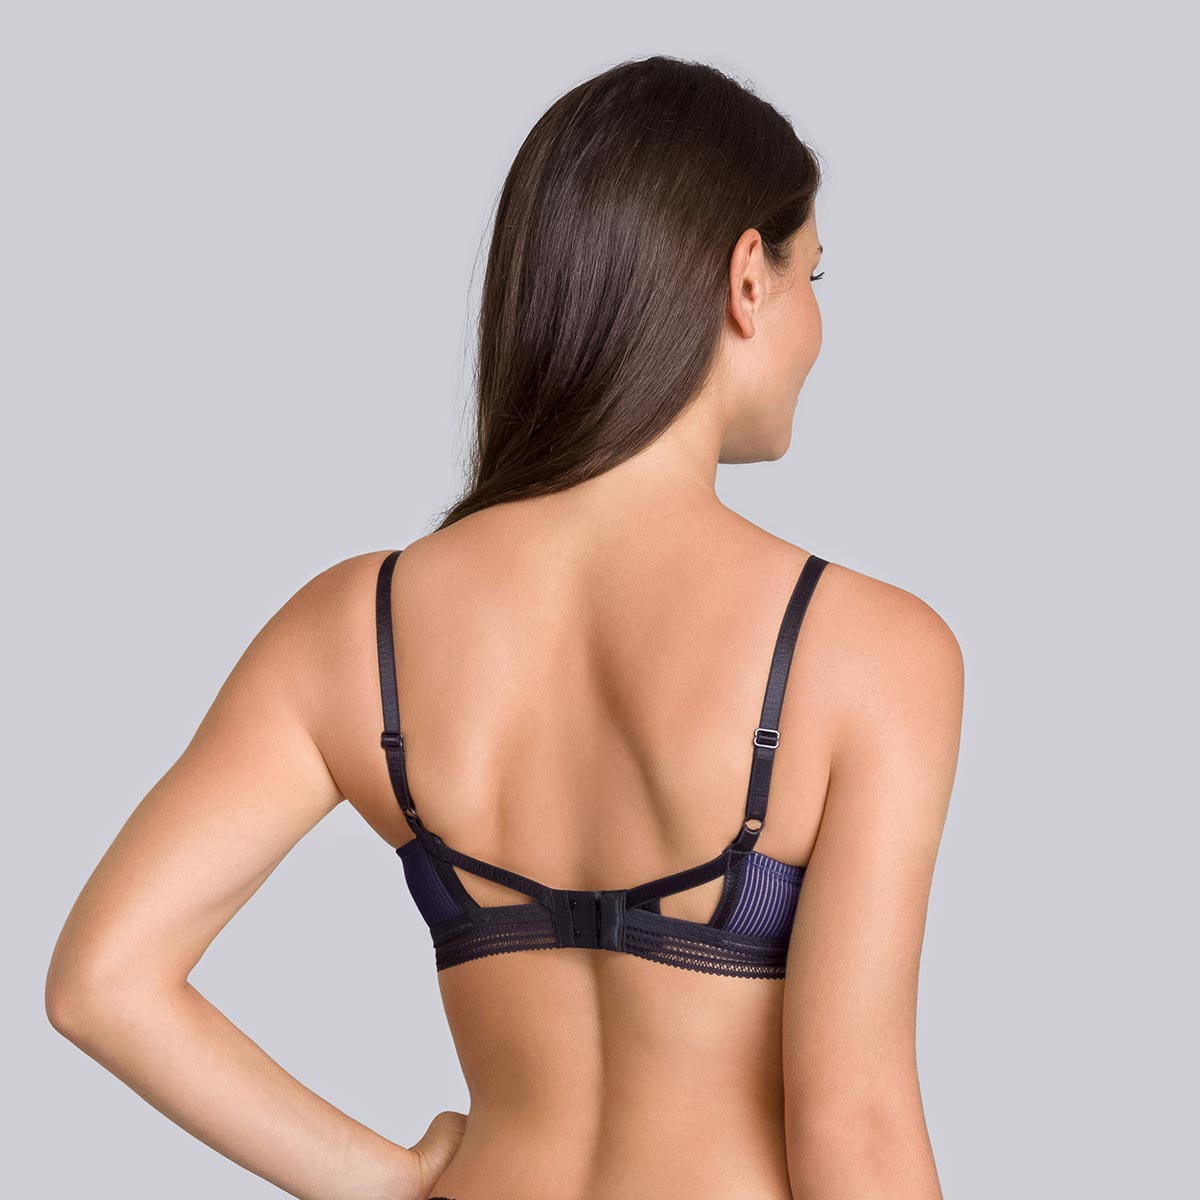 Navy blue & black Non-wired bra - Smoking Chic-PLAYTEX